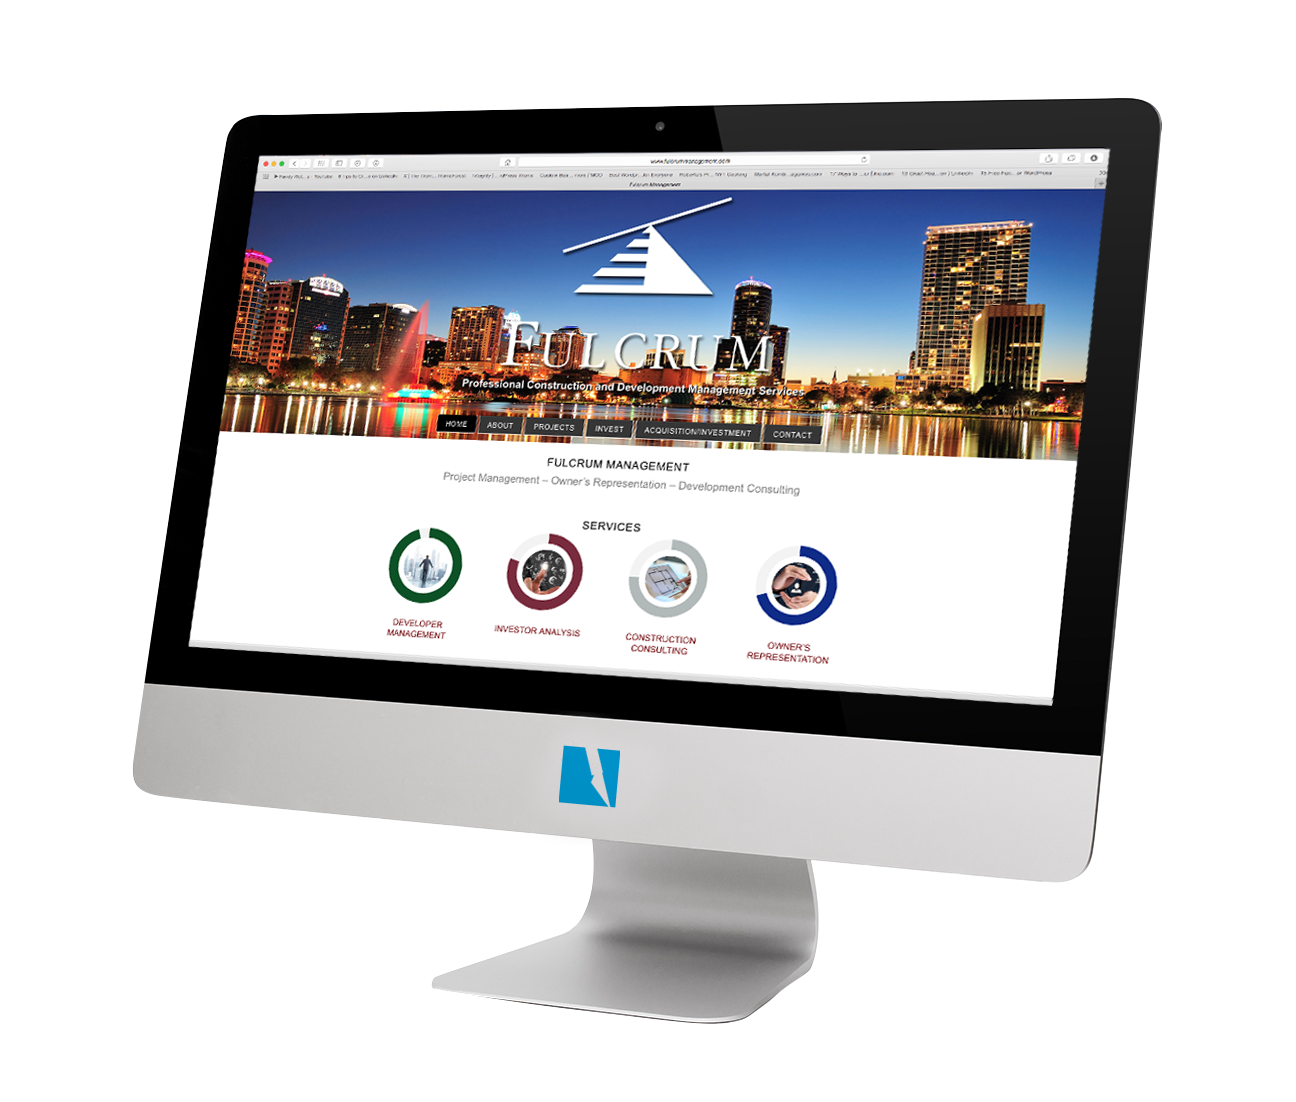 Creating beautiful websites is just the beginning. We design your site to fit your brand and your culture and build it to drive traffic and create sales.